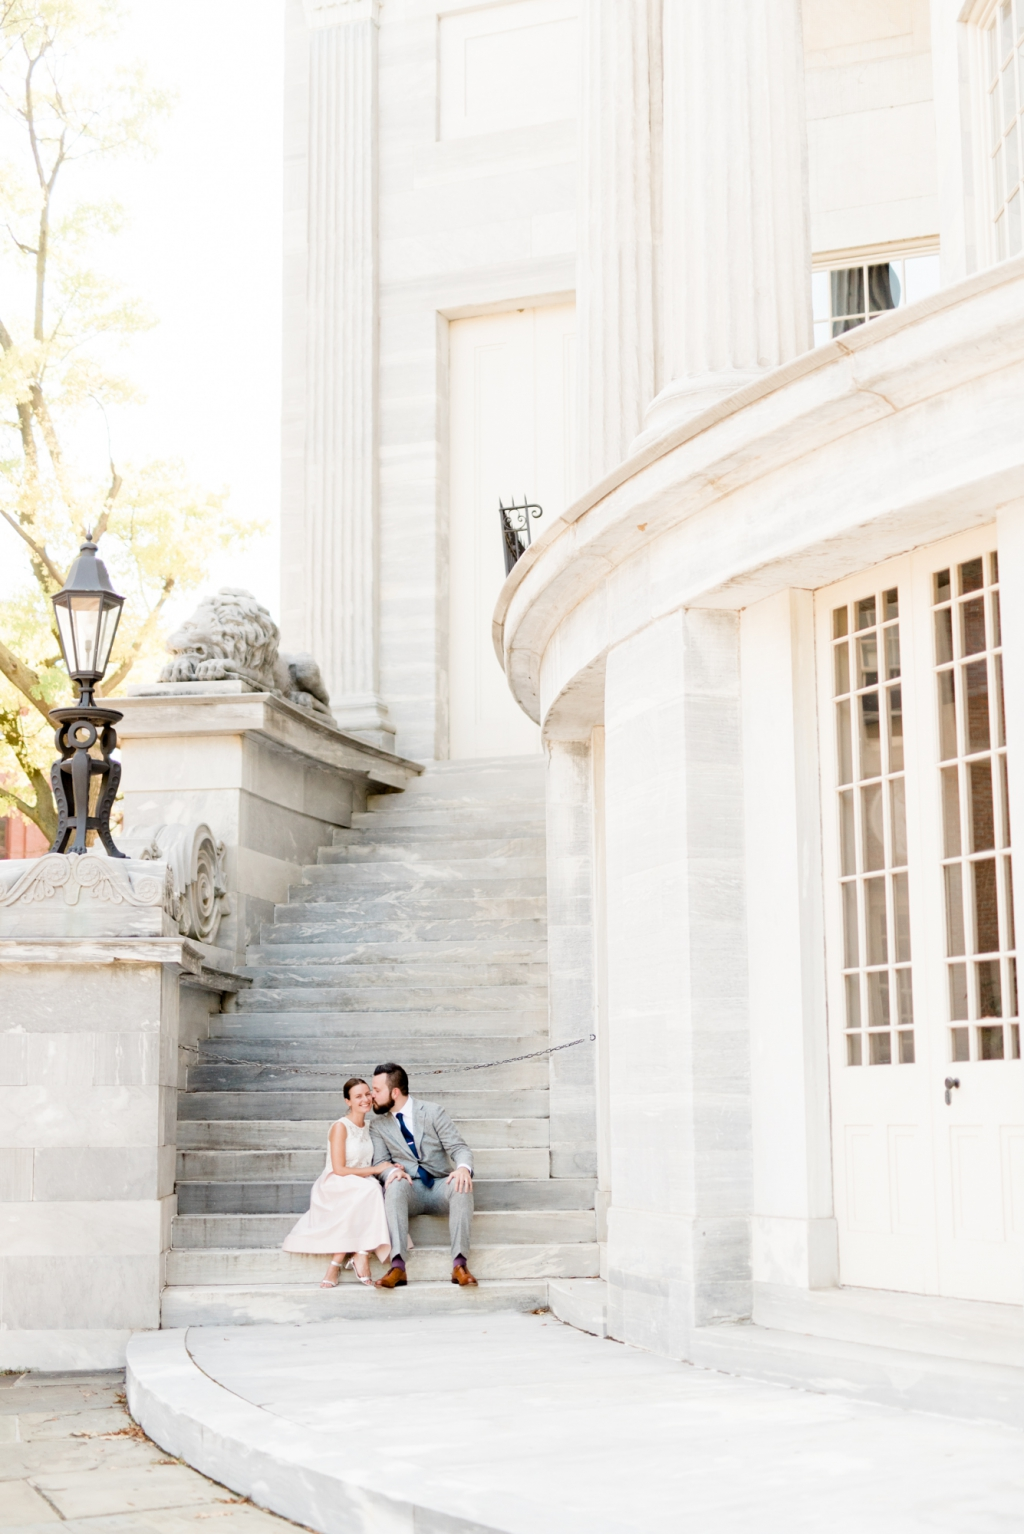 haley-richter-photography-intimate-summer-wedding-palomar-hotel-old-city-philadelphia-084